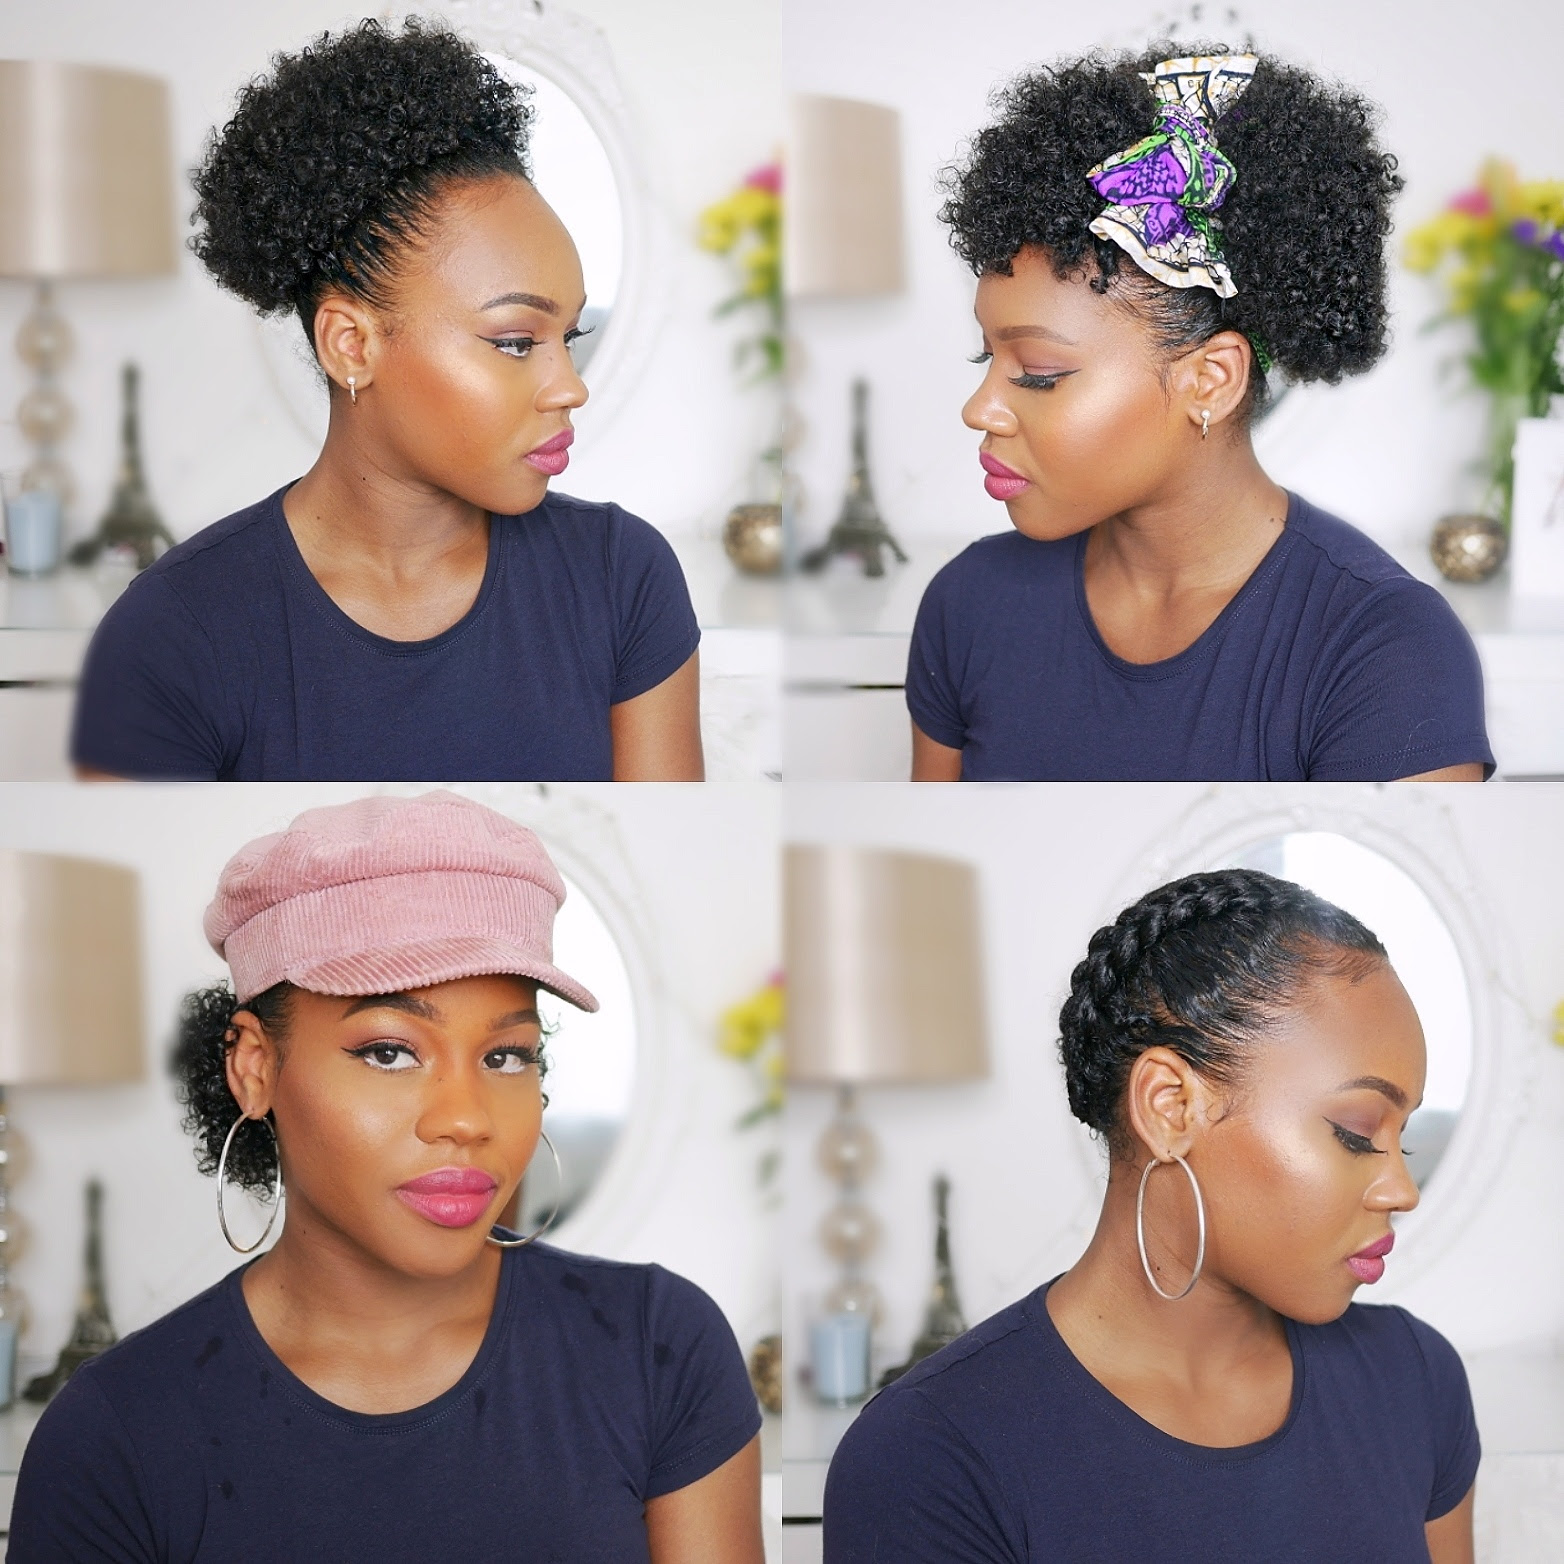 How To Style Short Natural Black Hair At Home